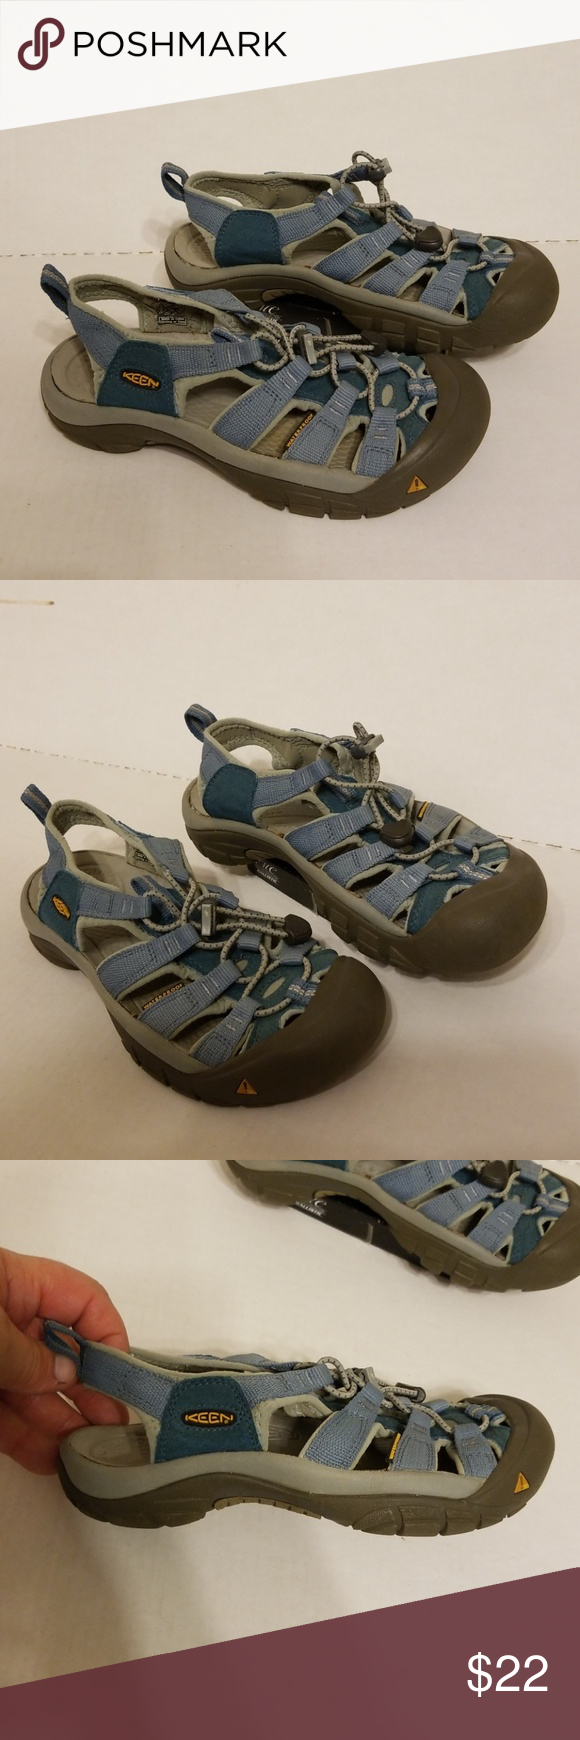 3803b1afb0350a Keen sandals women s shoes size 6 Good used condition shoes. Nice Keen  Shoes Sandals